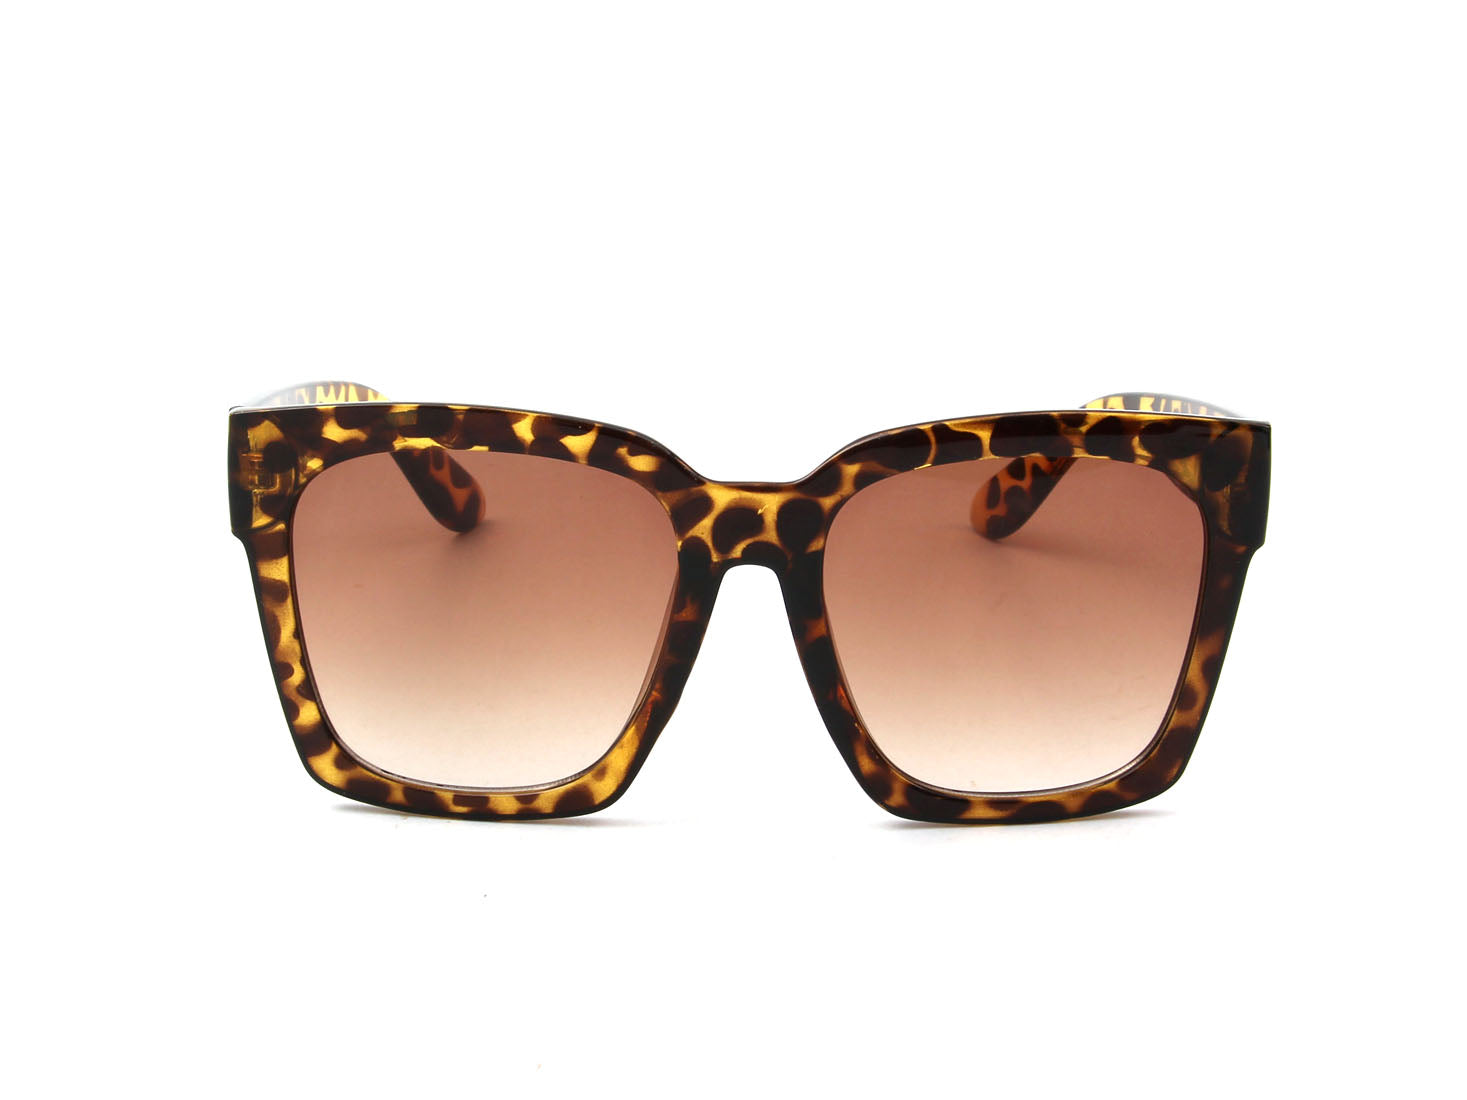 S1138 - Women Square Oversize Fashion Sunglasses